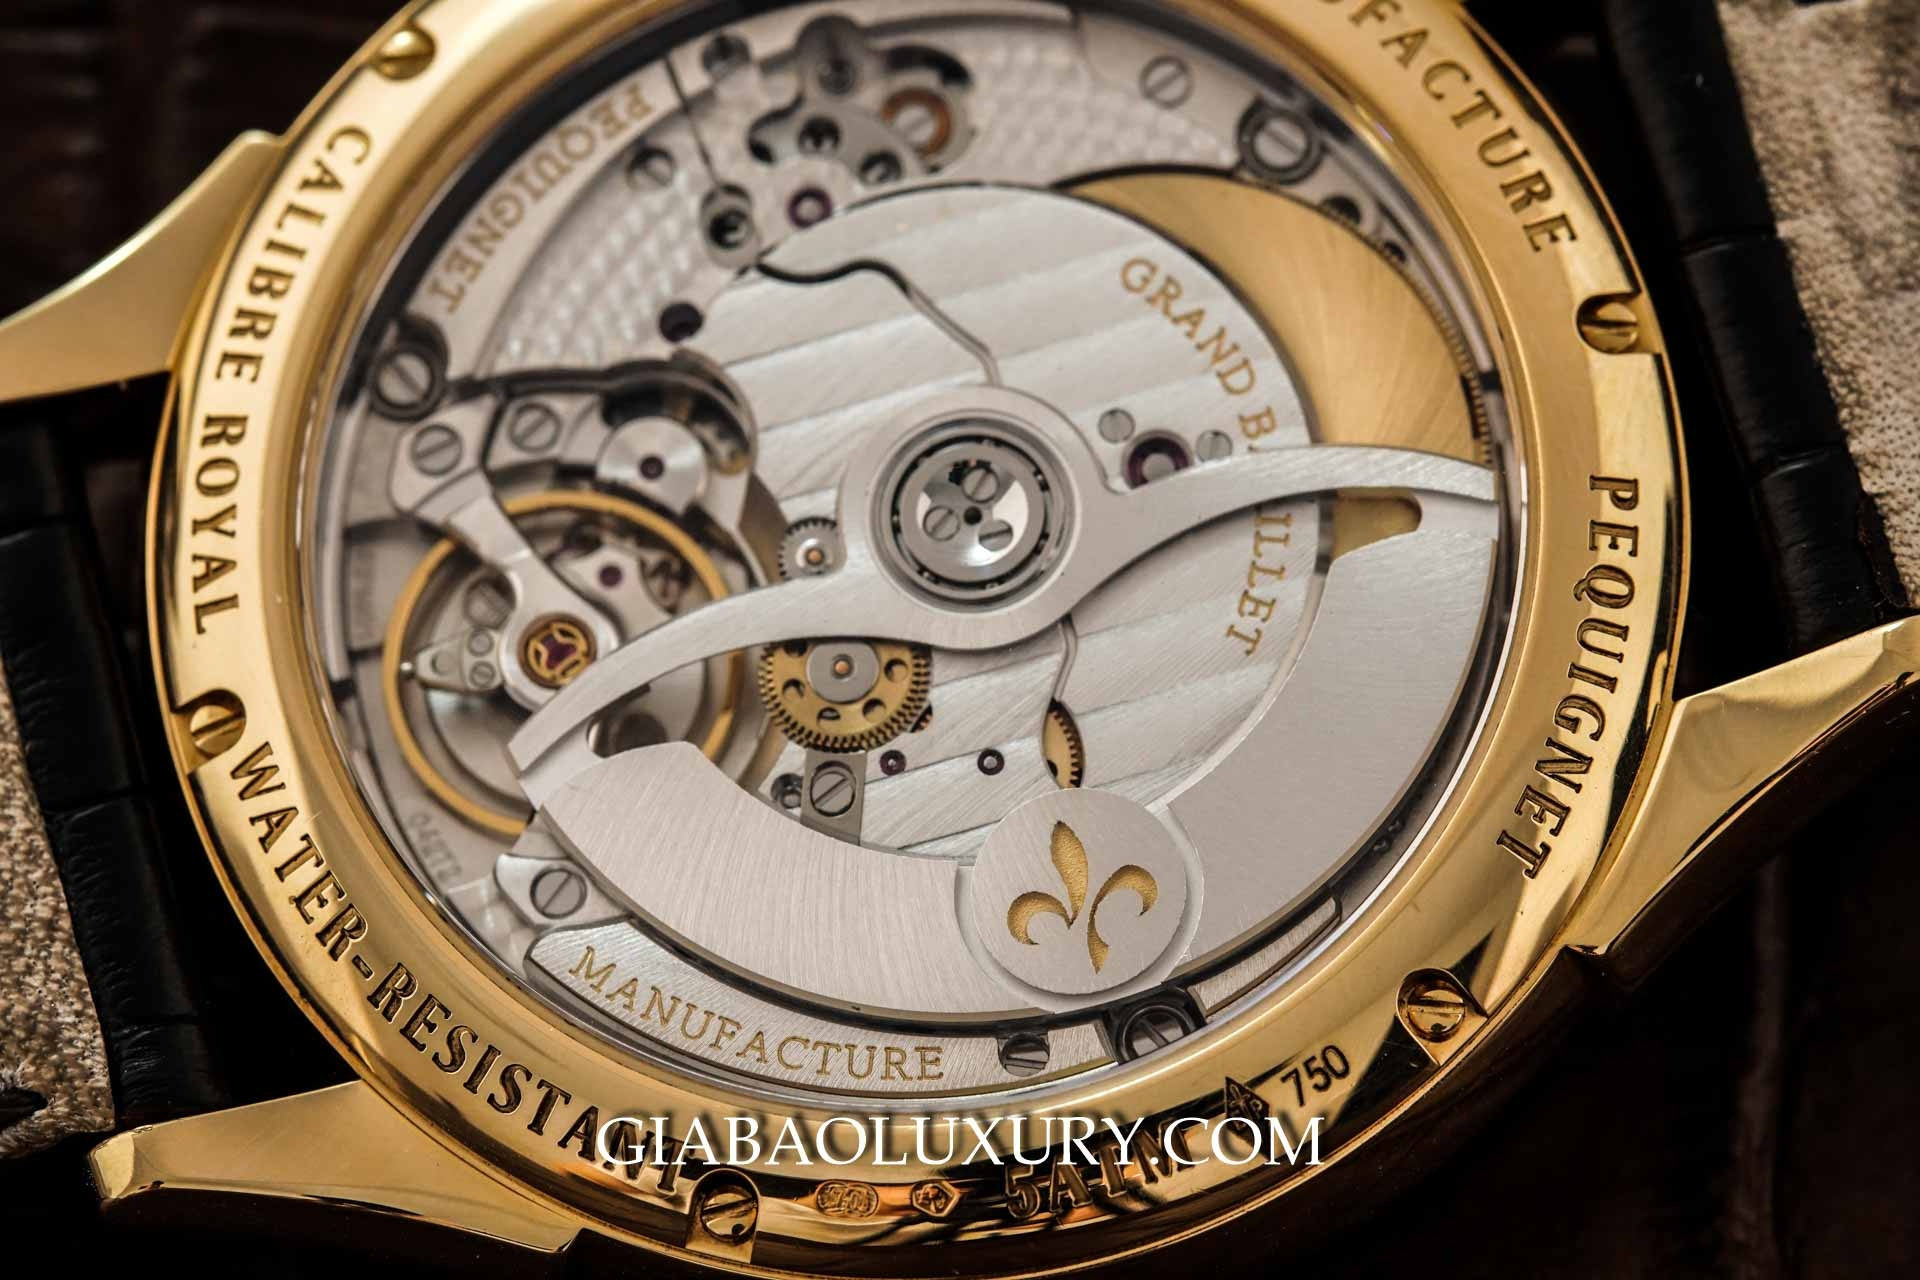 Đồng Hồ Pequignet Rue Royale Moonphase Yellow Gold 9011438CN